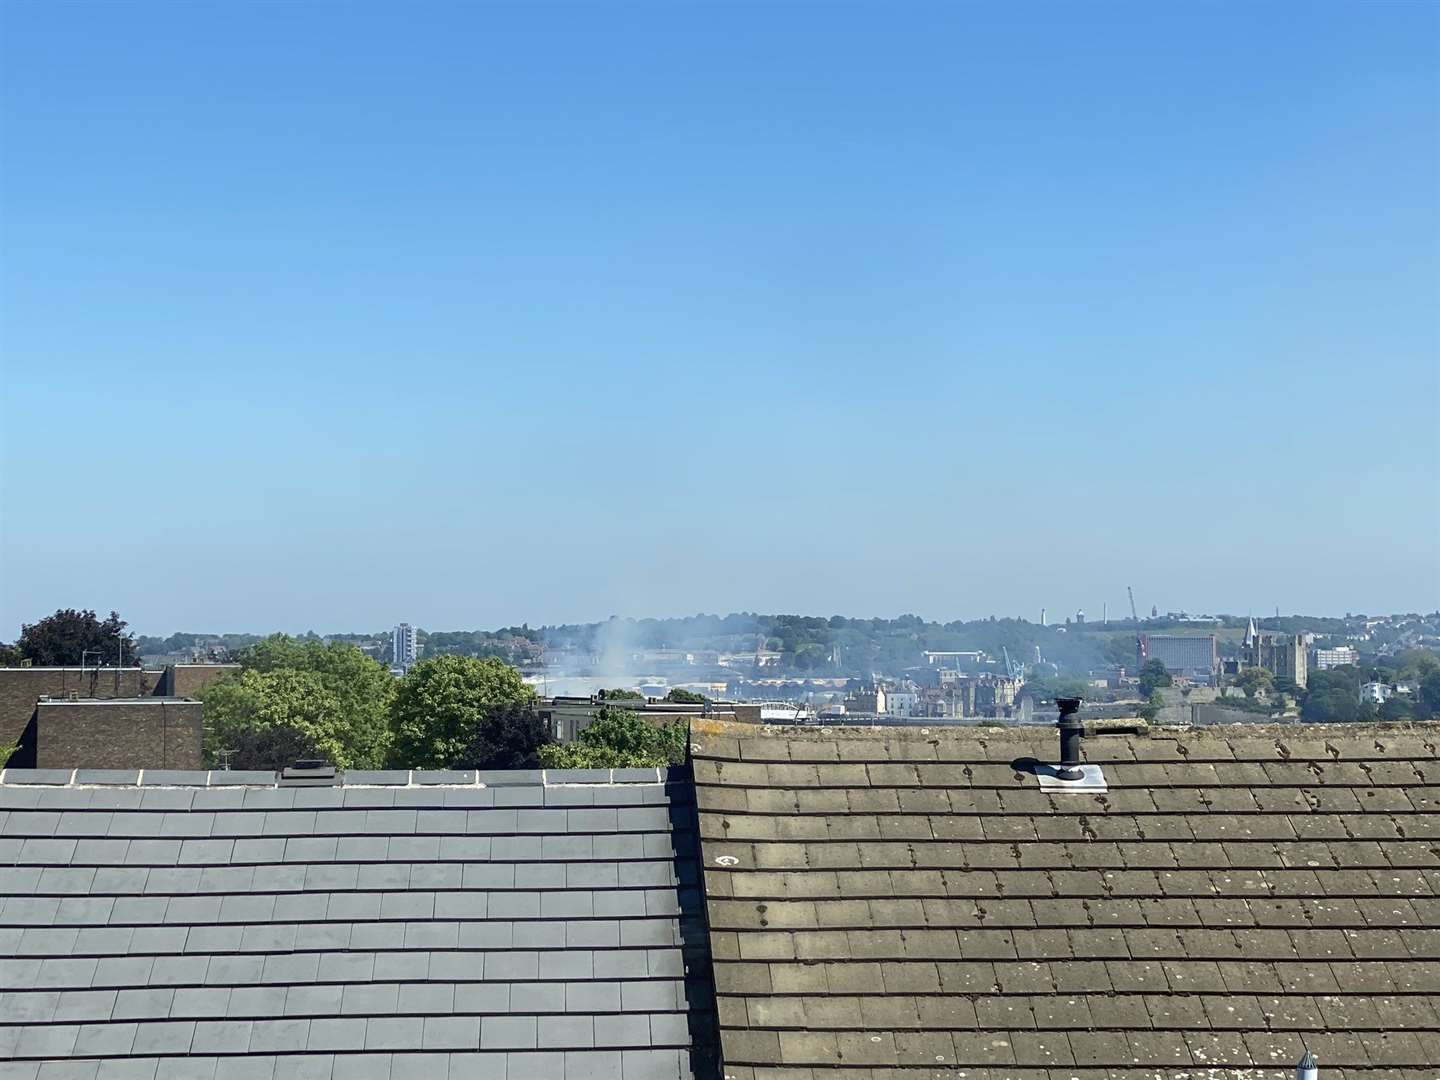 Smoke can be seen from miles away. Photo: Sammy Carter